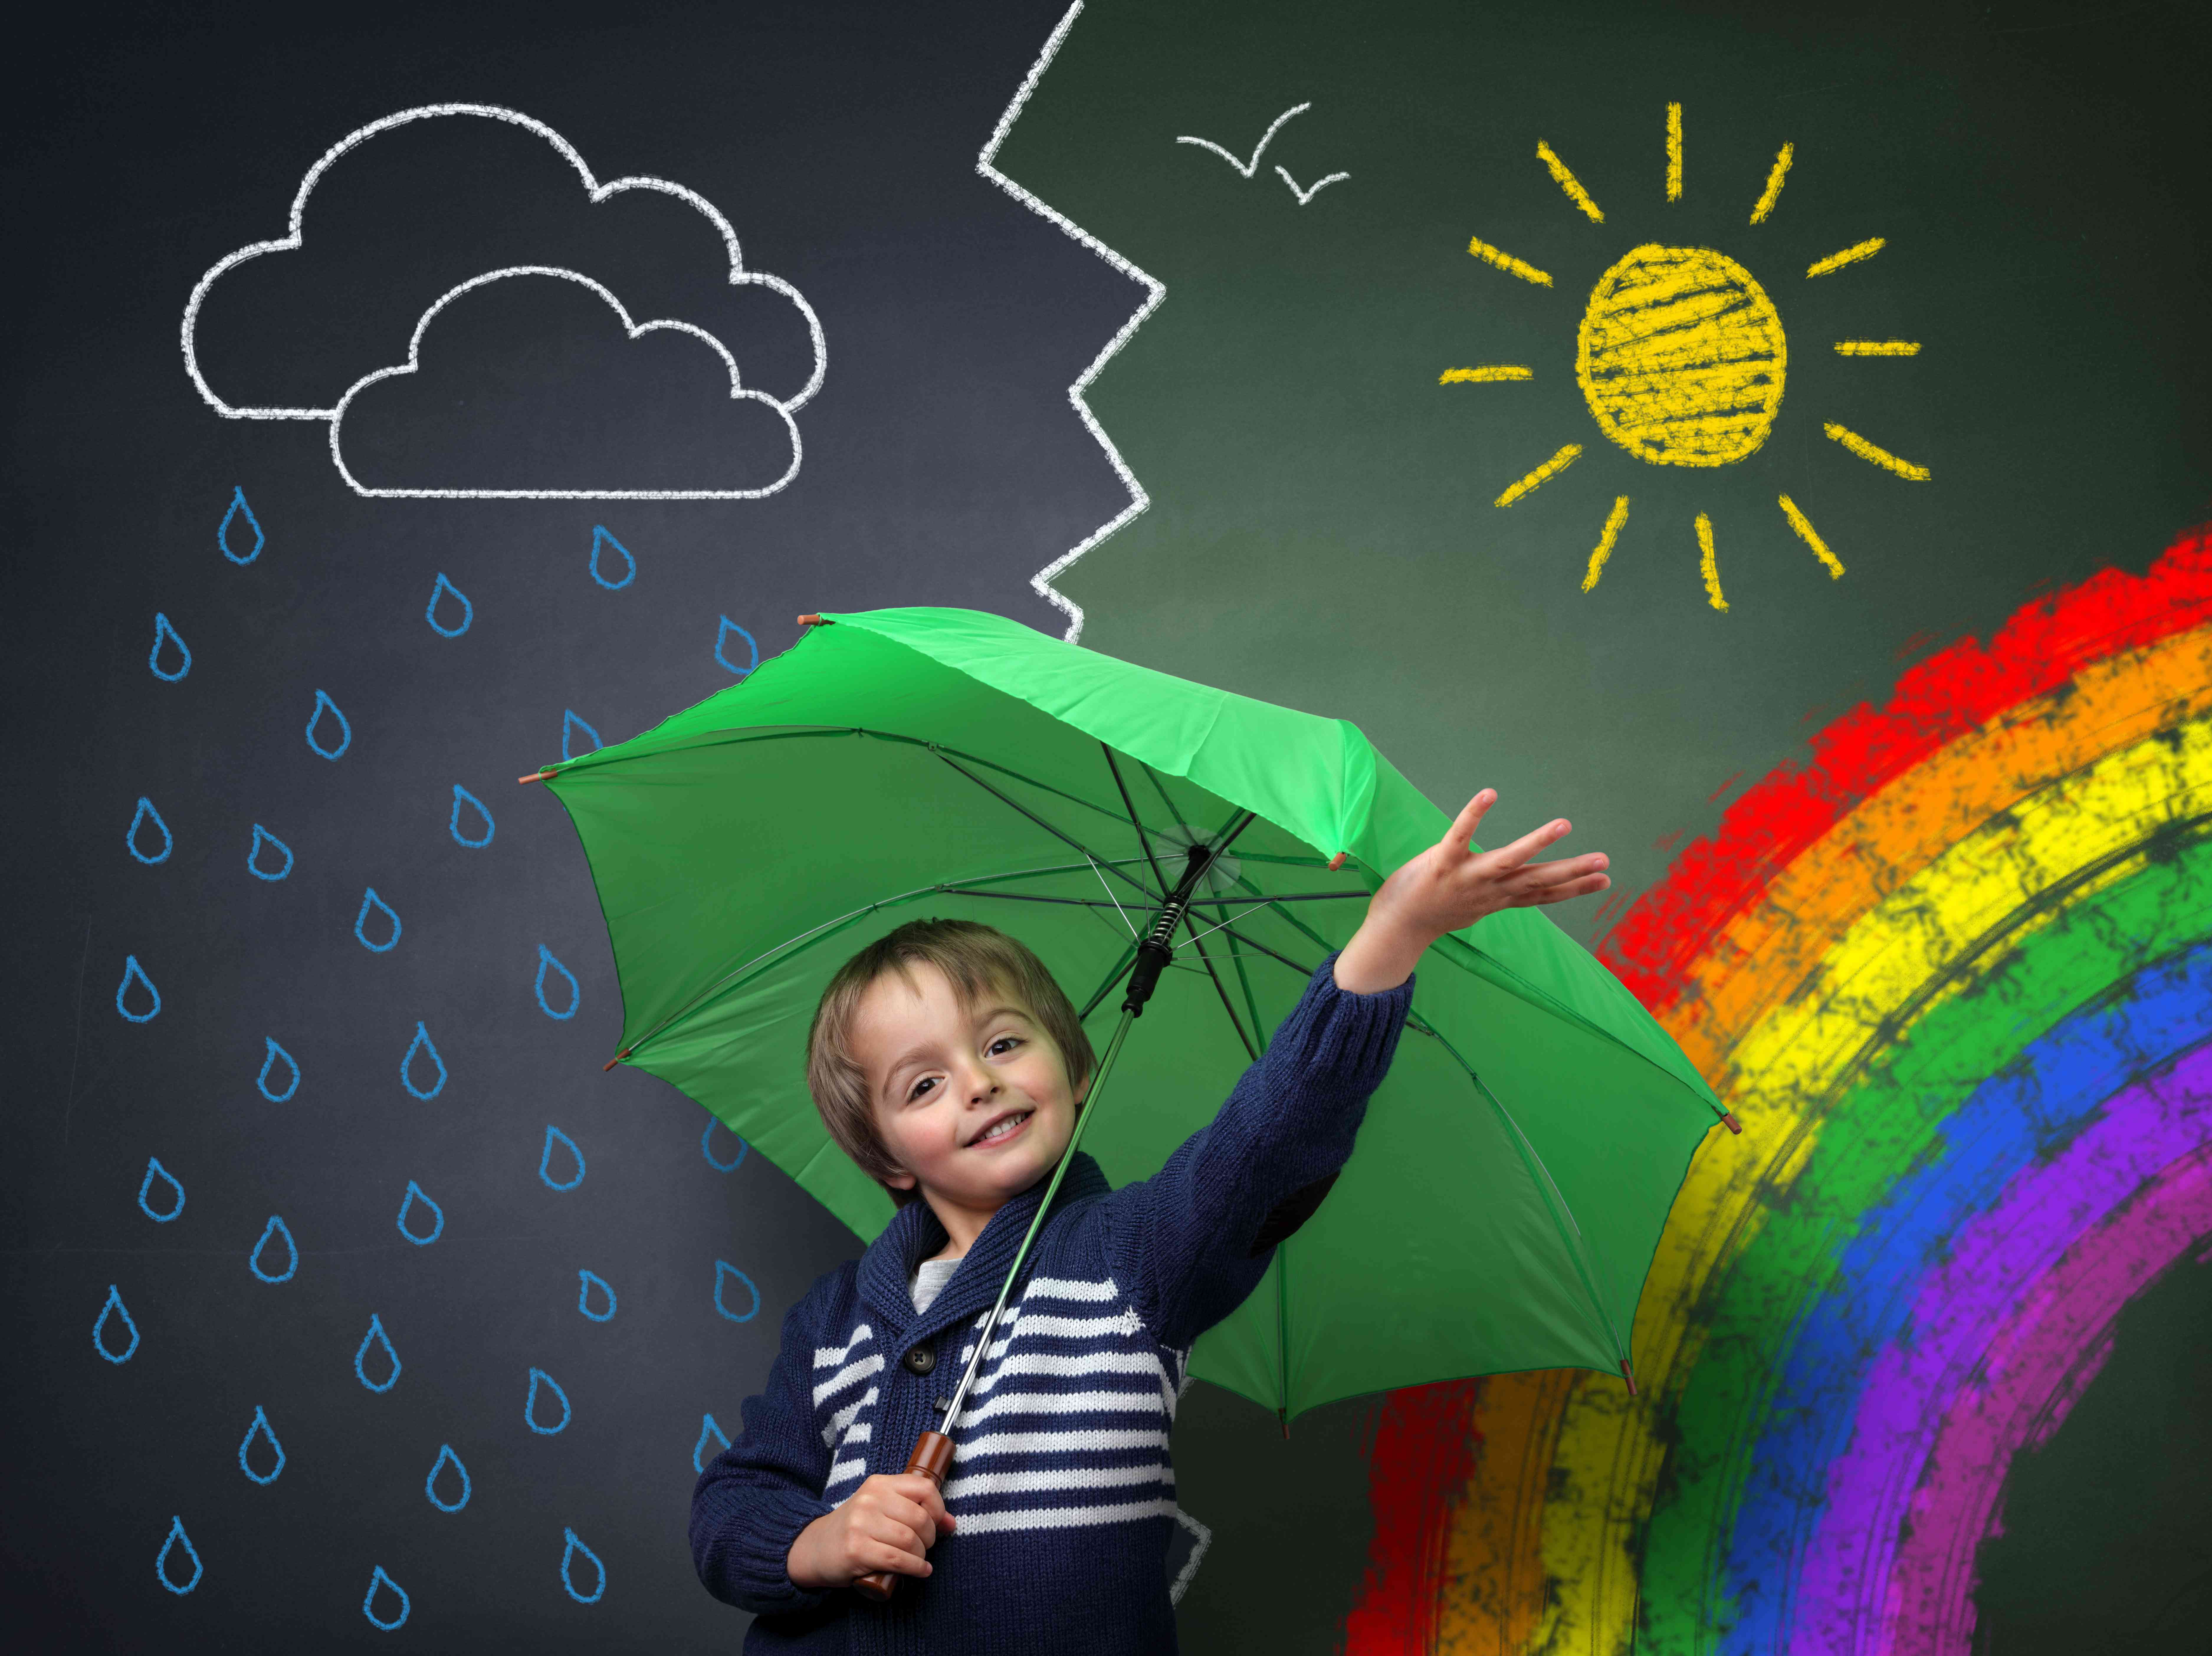 A boy stands under an umbrella in front of a chalkboard